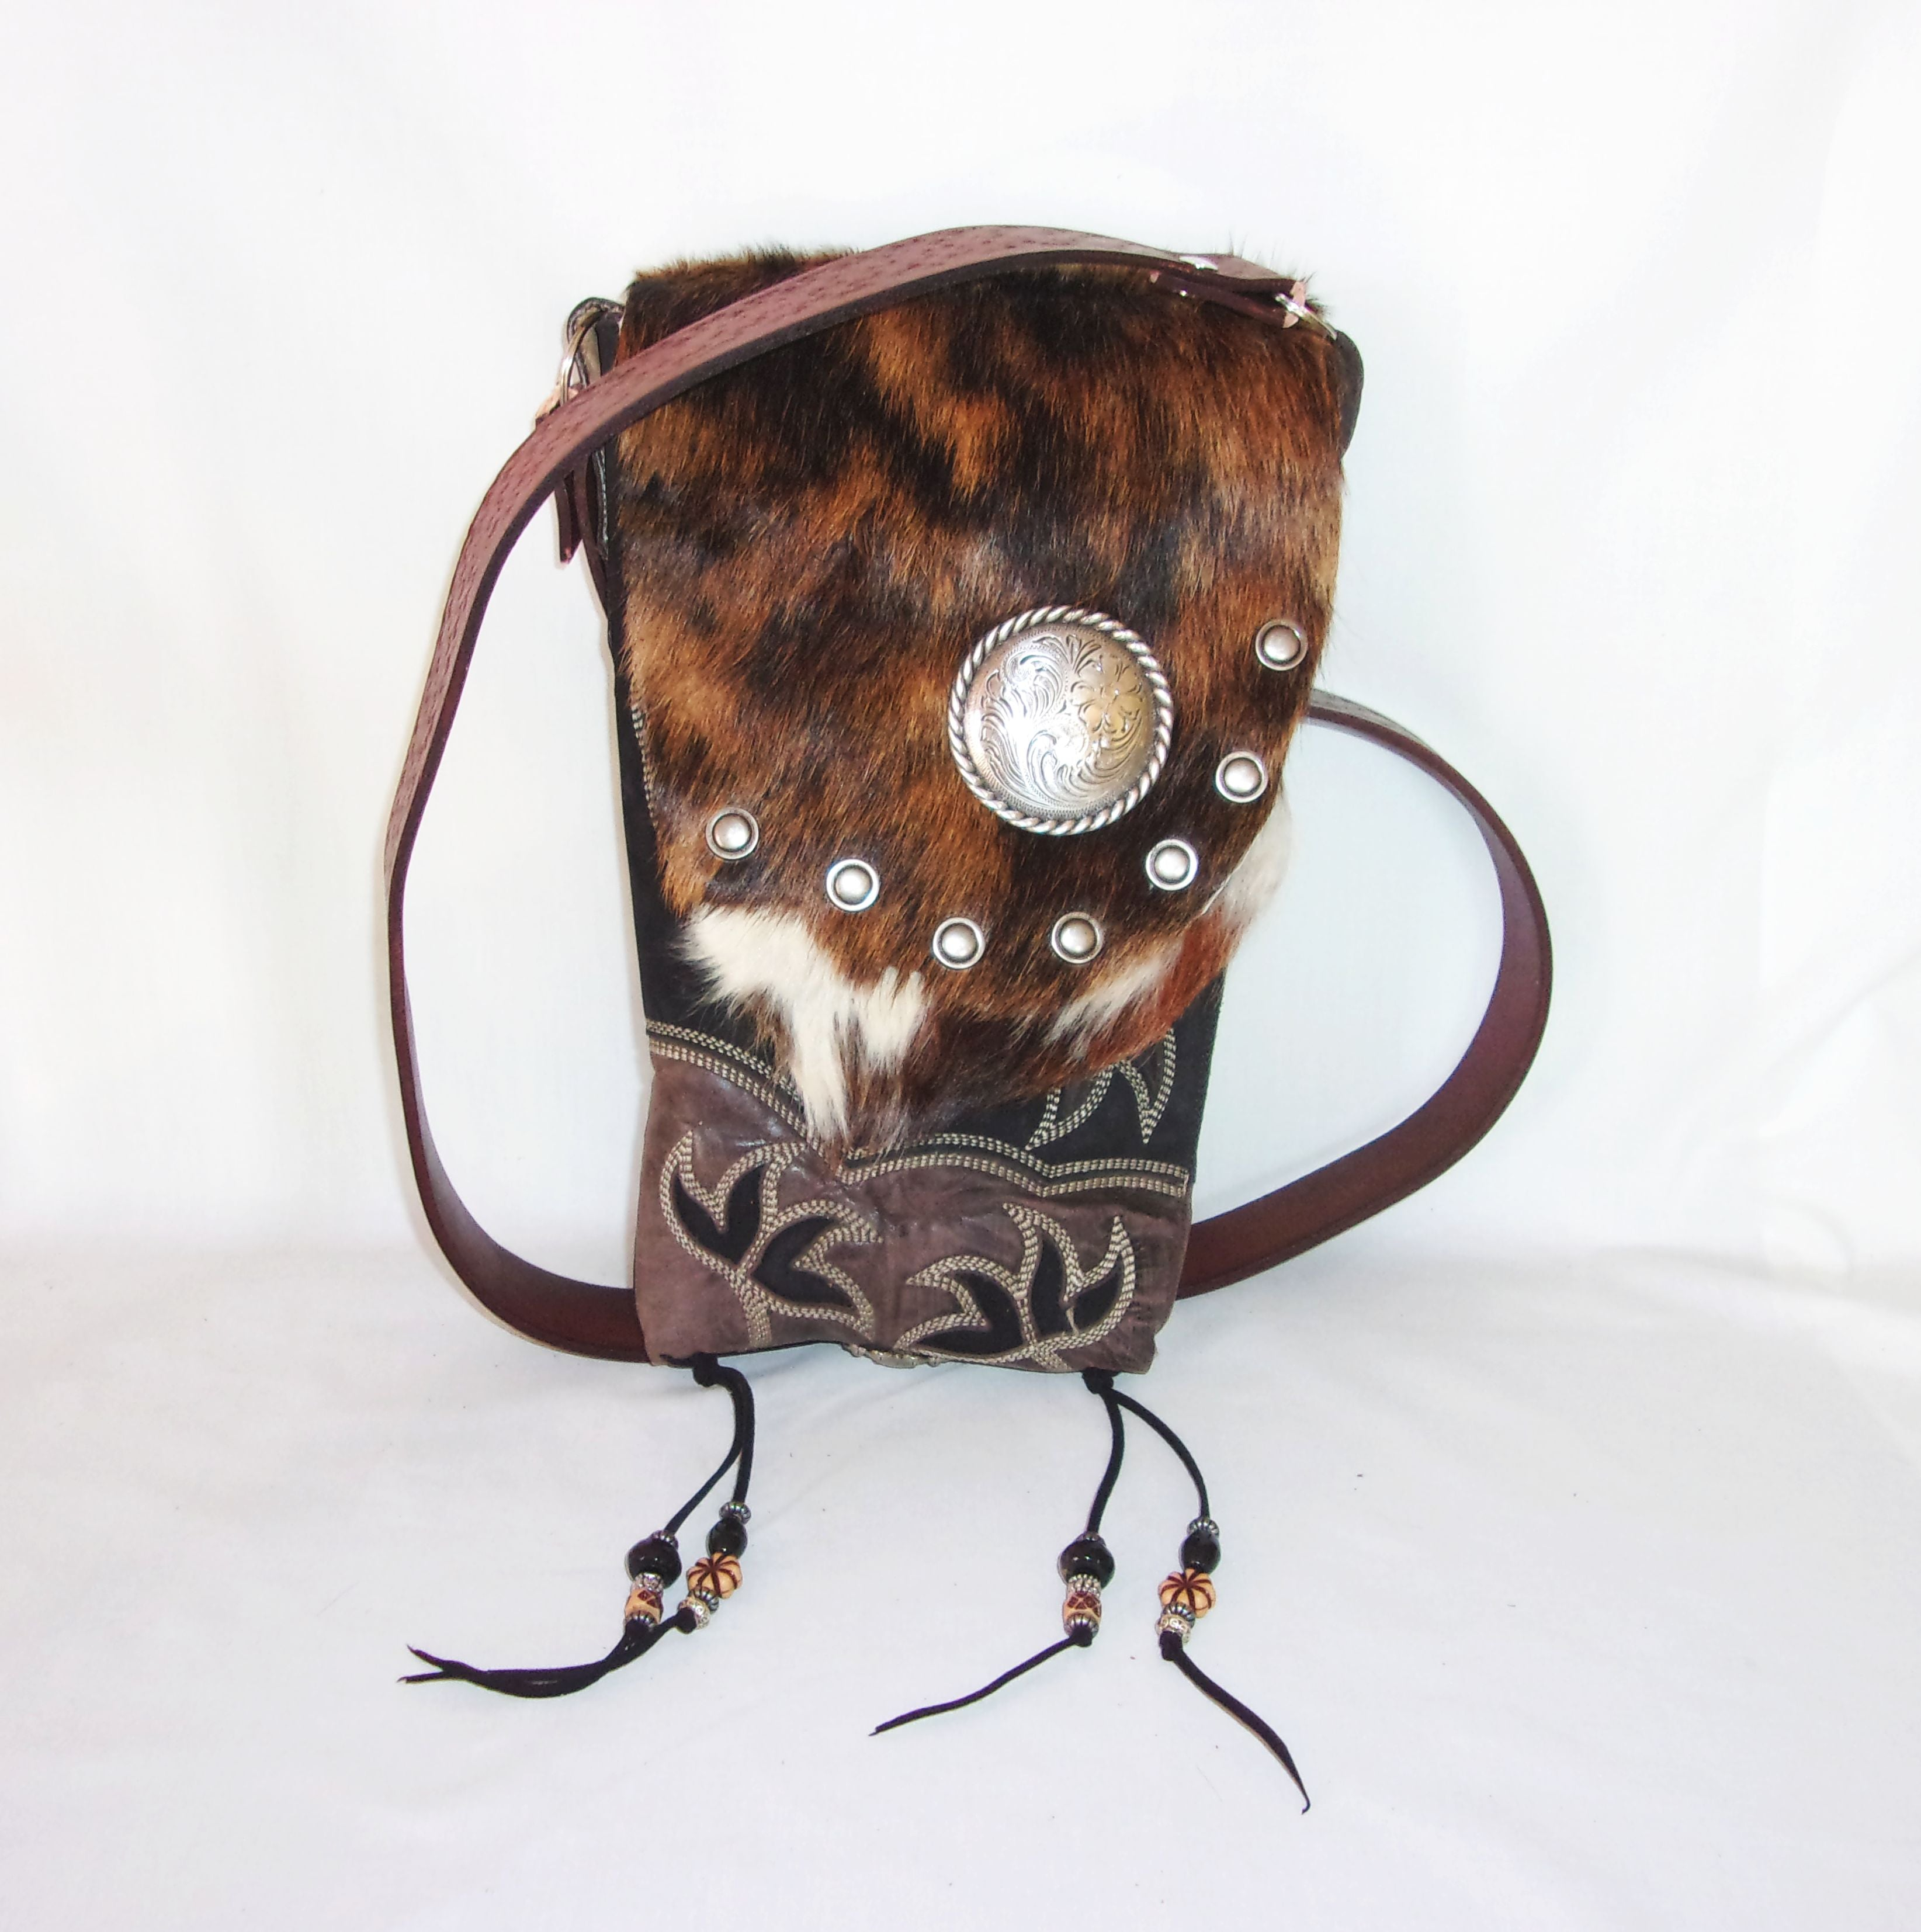 Hair on Hide Bag - Cowboy Boot Purse - Cowhide Purse - Handcrafted Crossbody Purse HH04